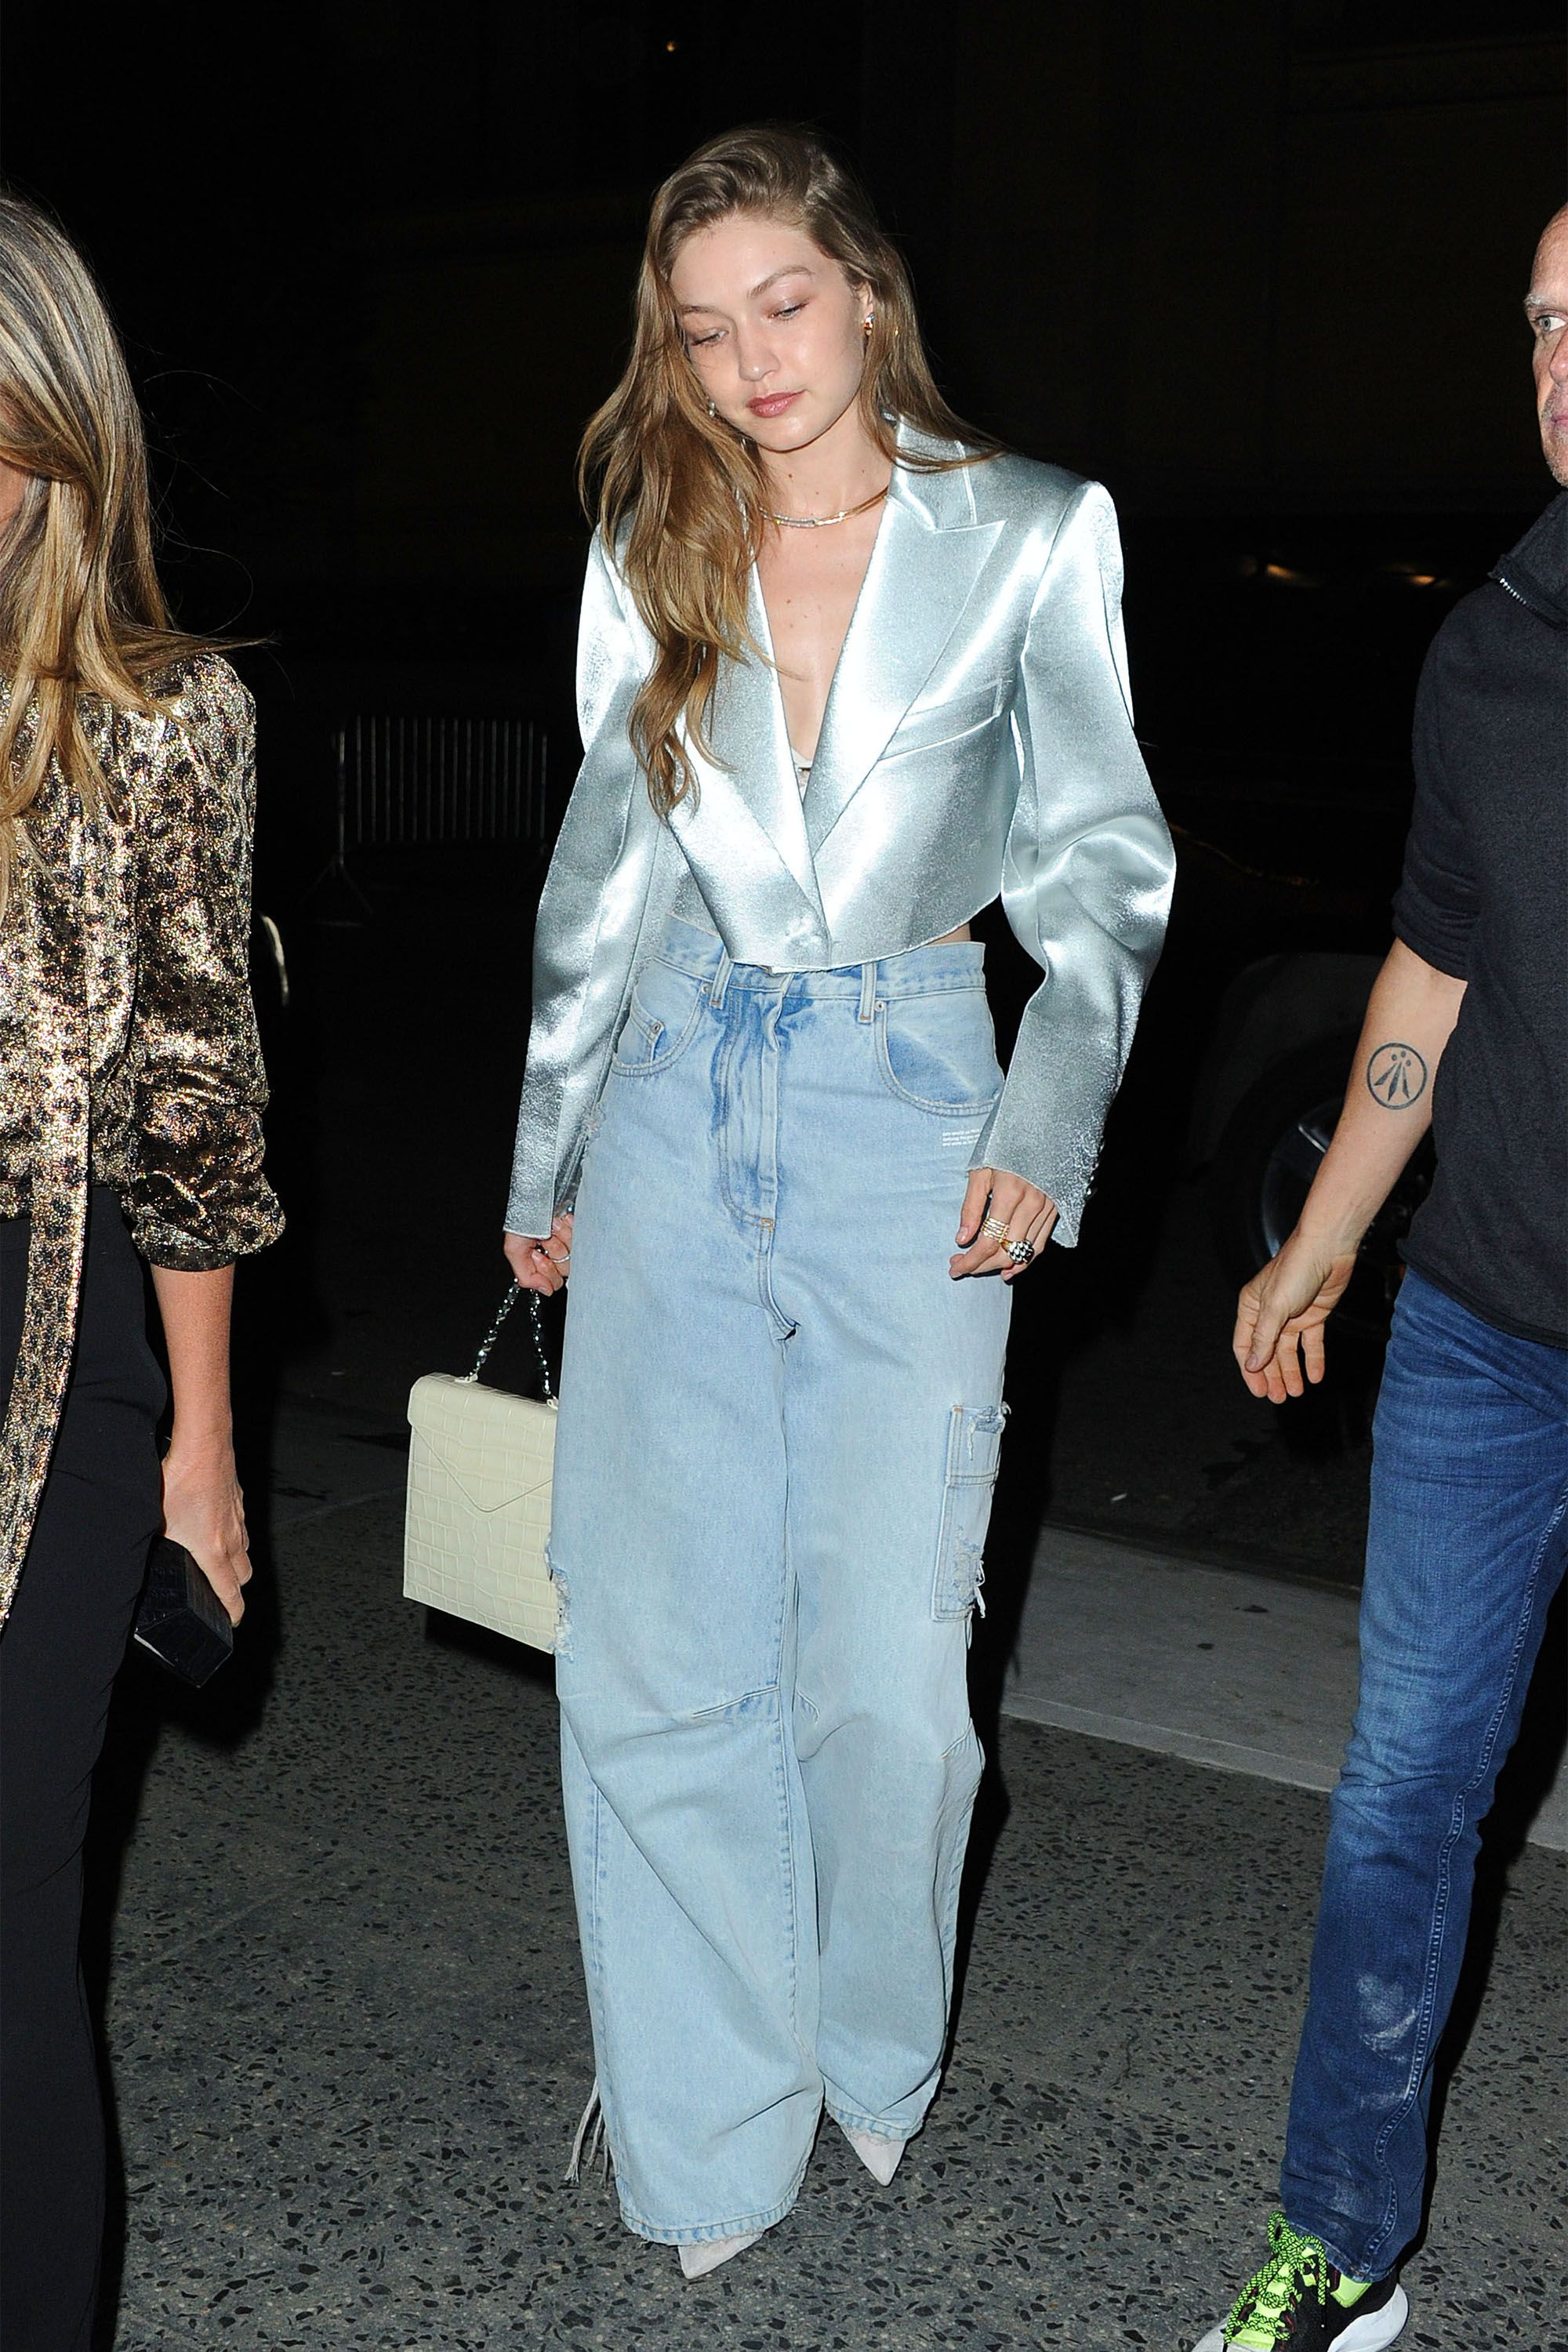 Gigi Hadid Arrives To The L'Avenue Restaurant